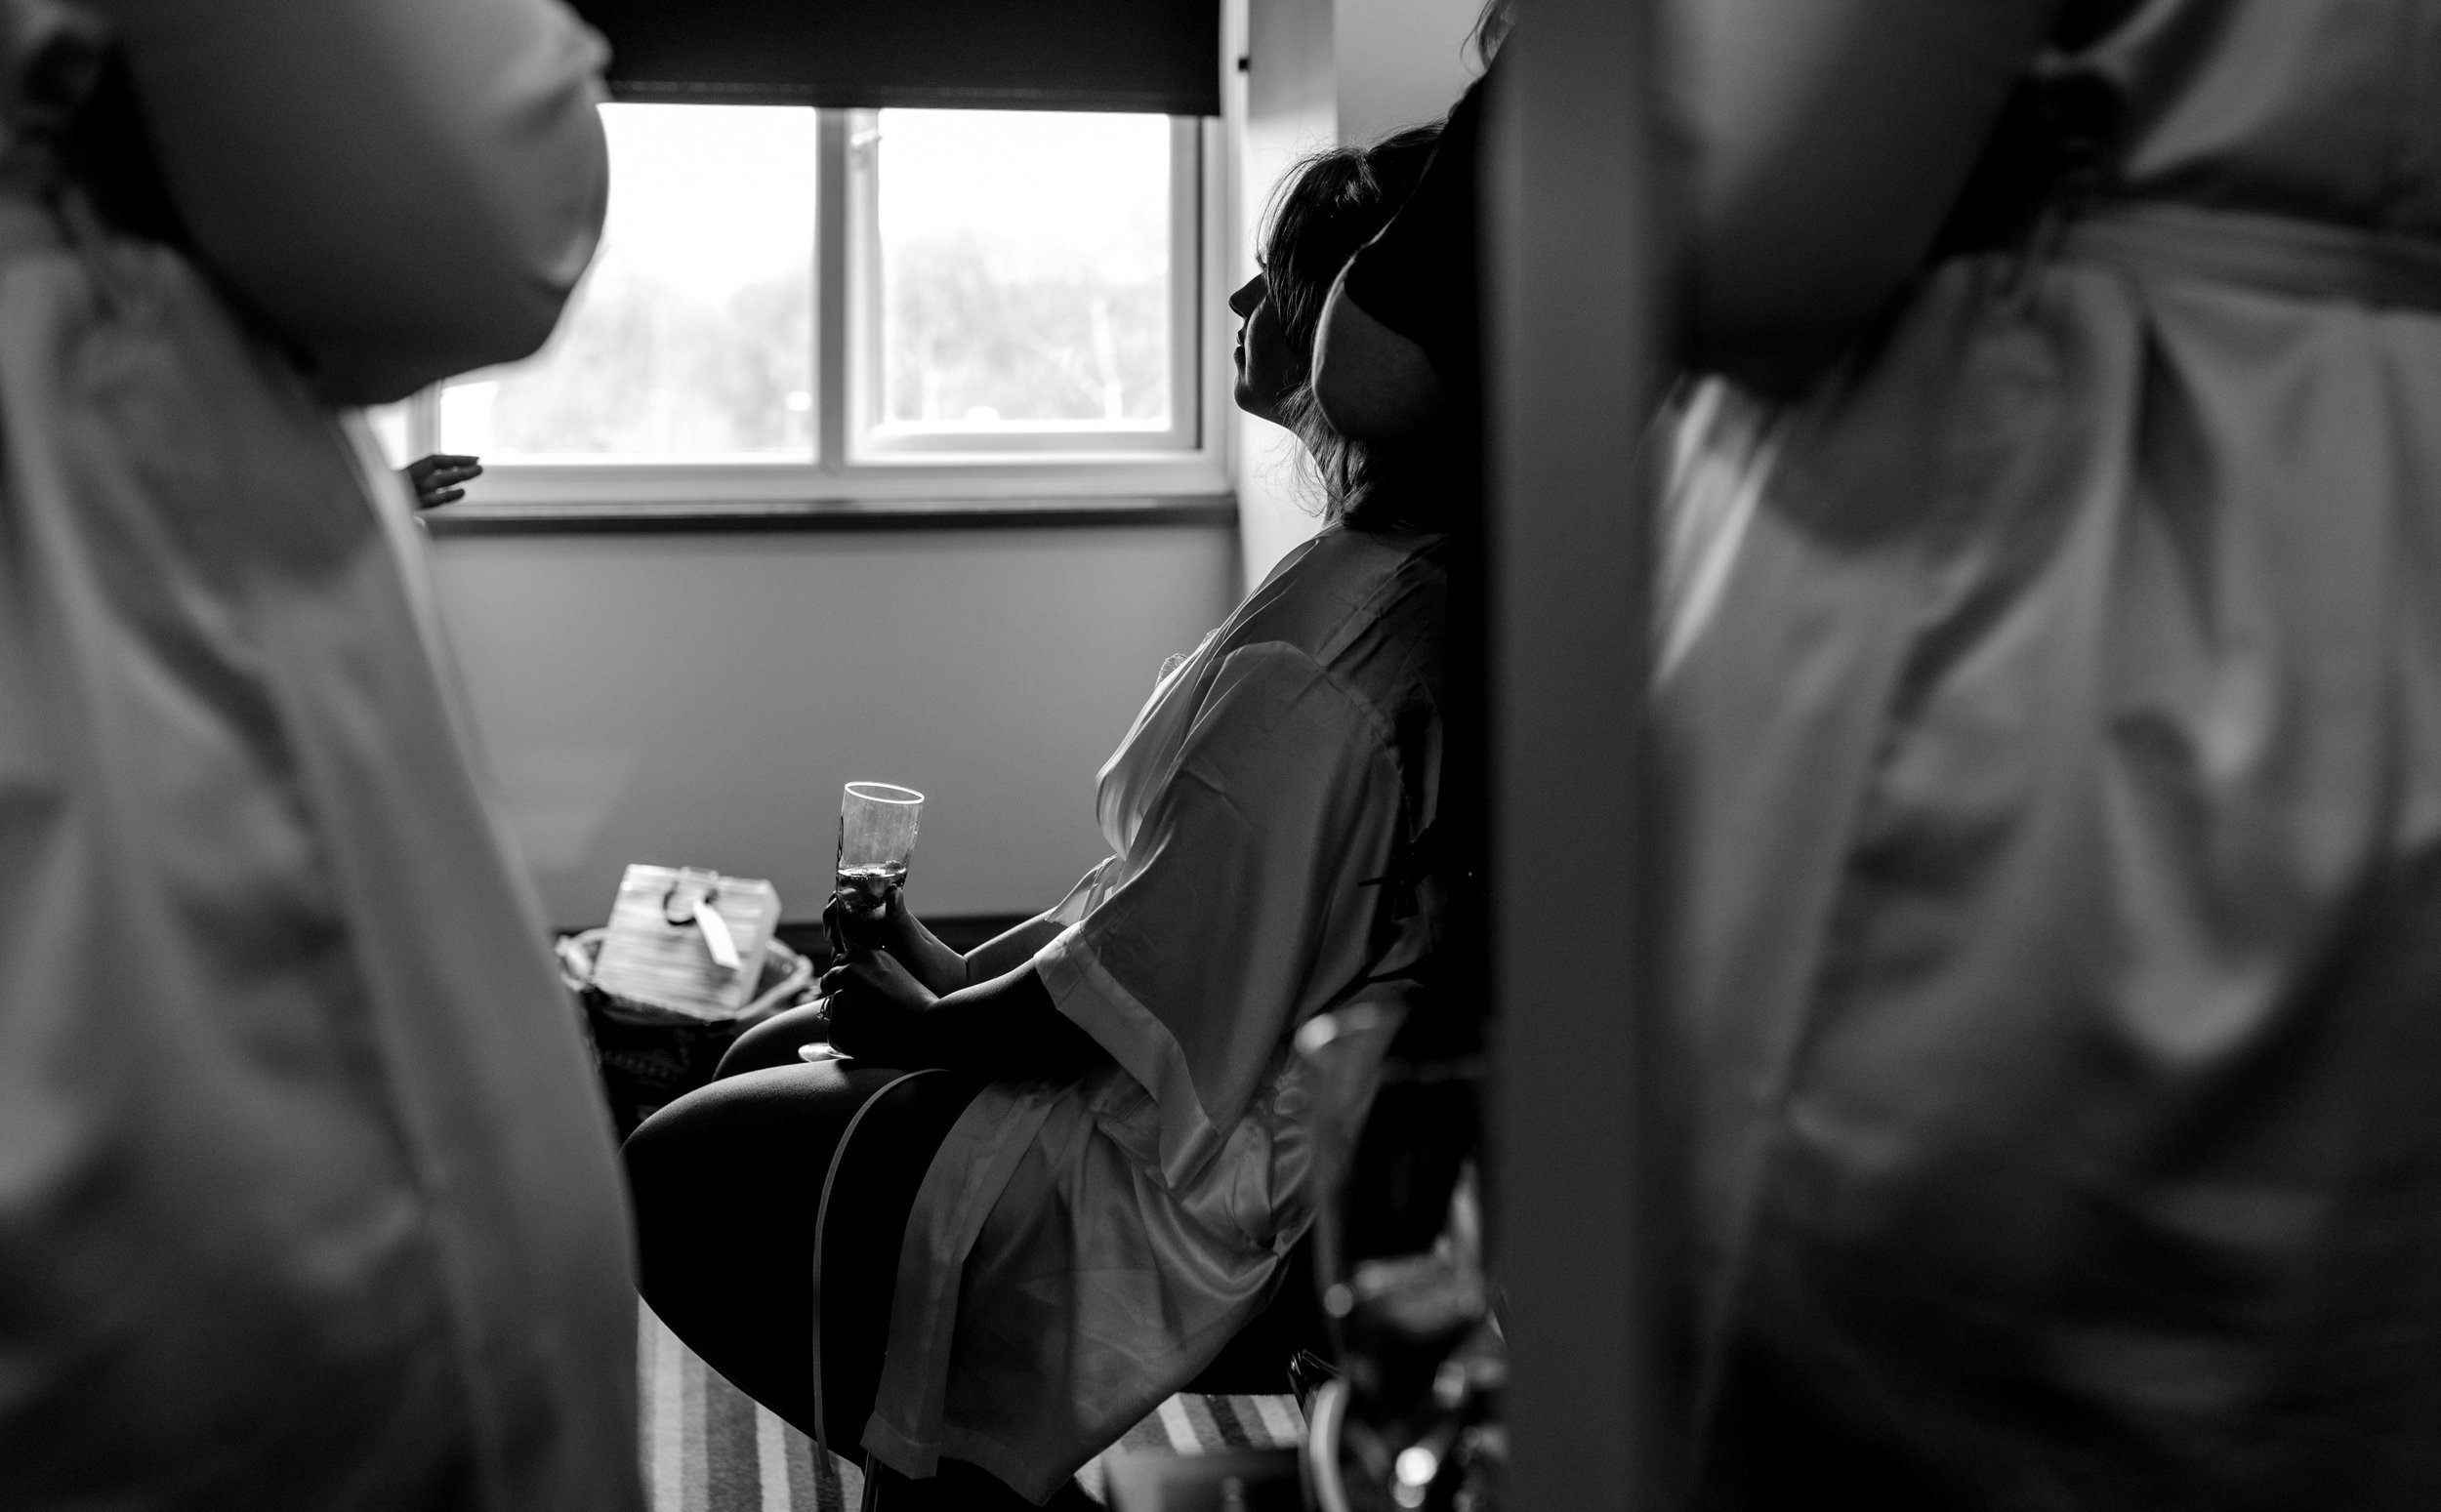 The bride sits lit up with light from the window while she has her makeup done